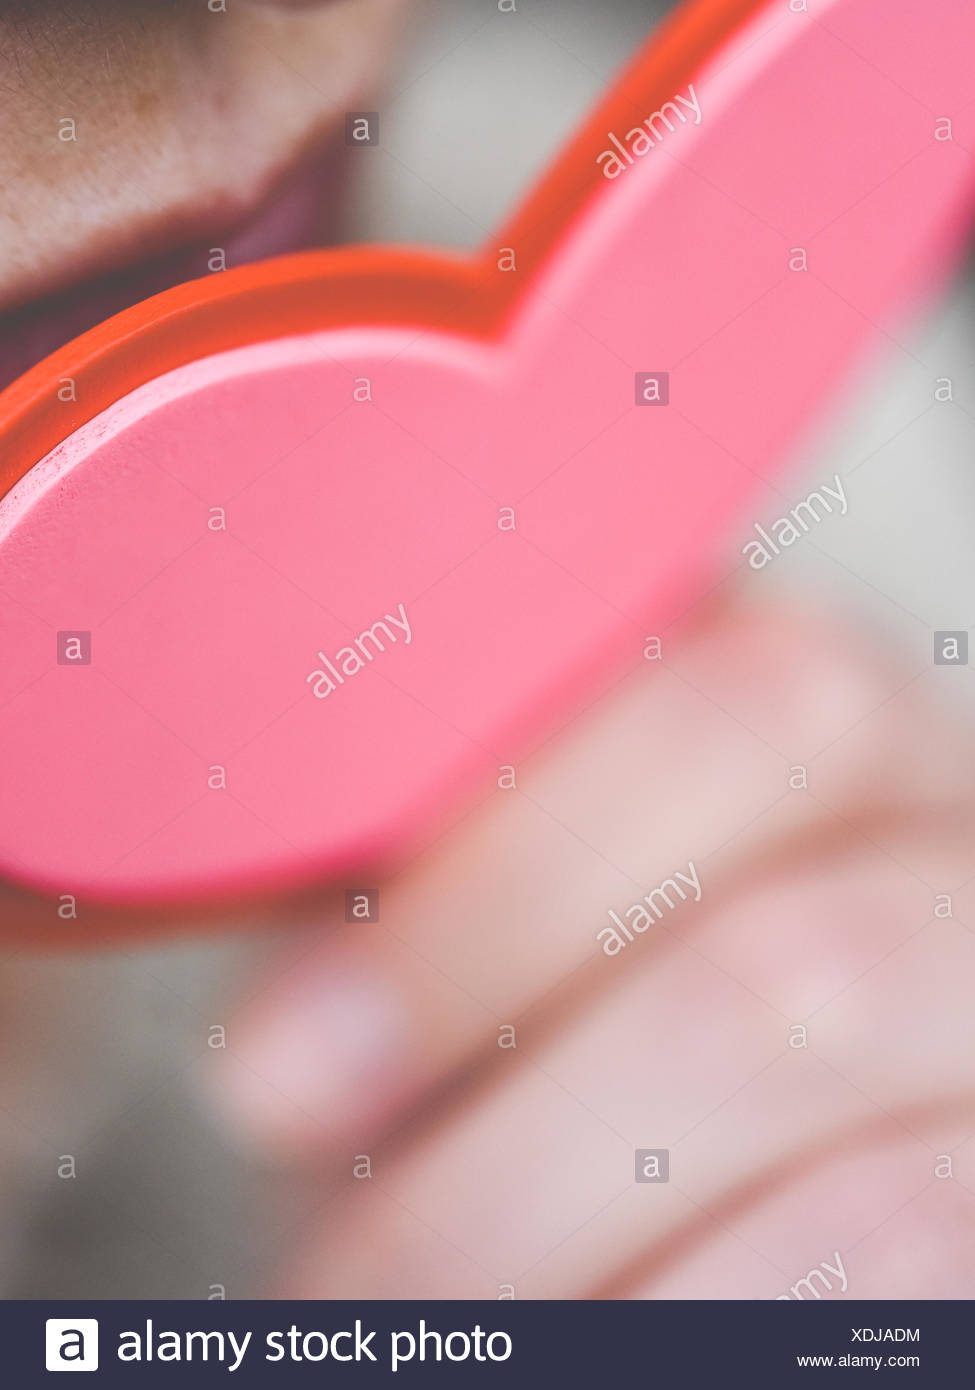 Woman holding a paper heart close to her mouth Stock Photo